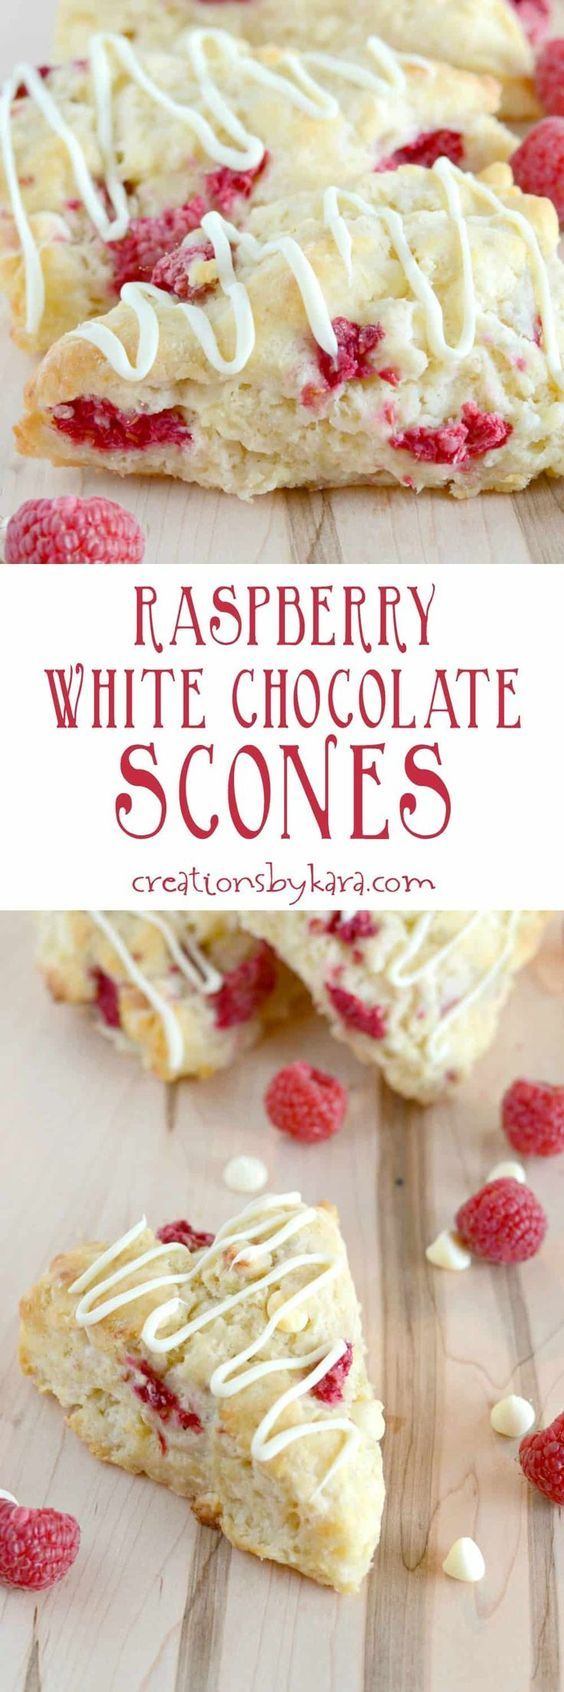 Soft, tender, and bursting with flavor, these White Chocolate Raspberry Scones are perfect for breakfast, brunch, or snacking! is part of Chocolate scones -